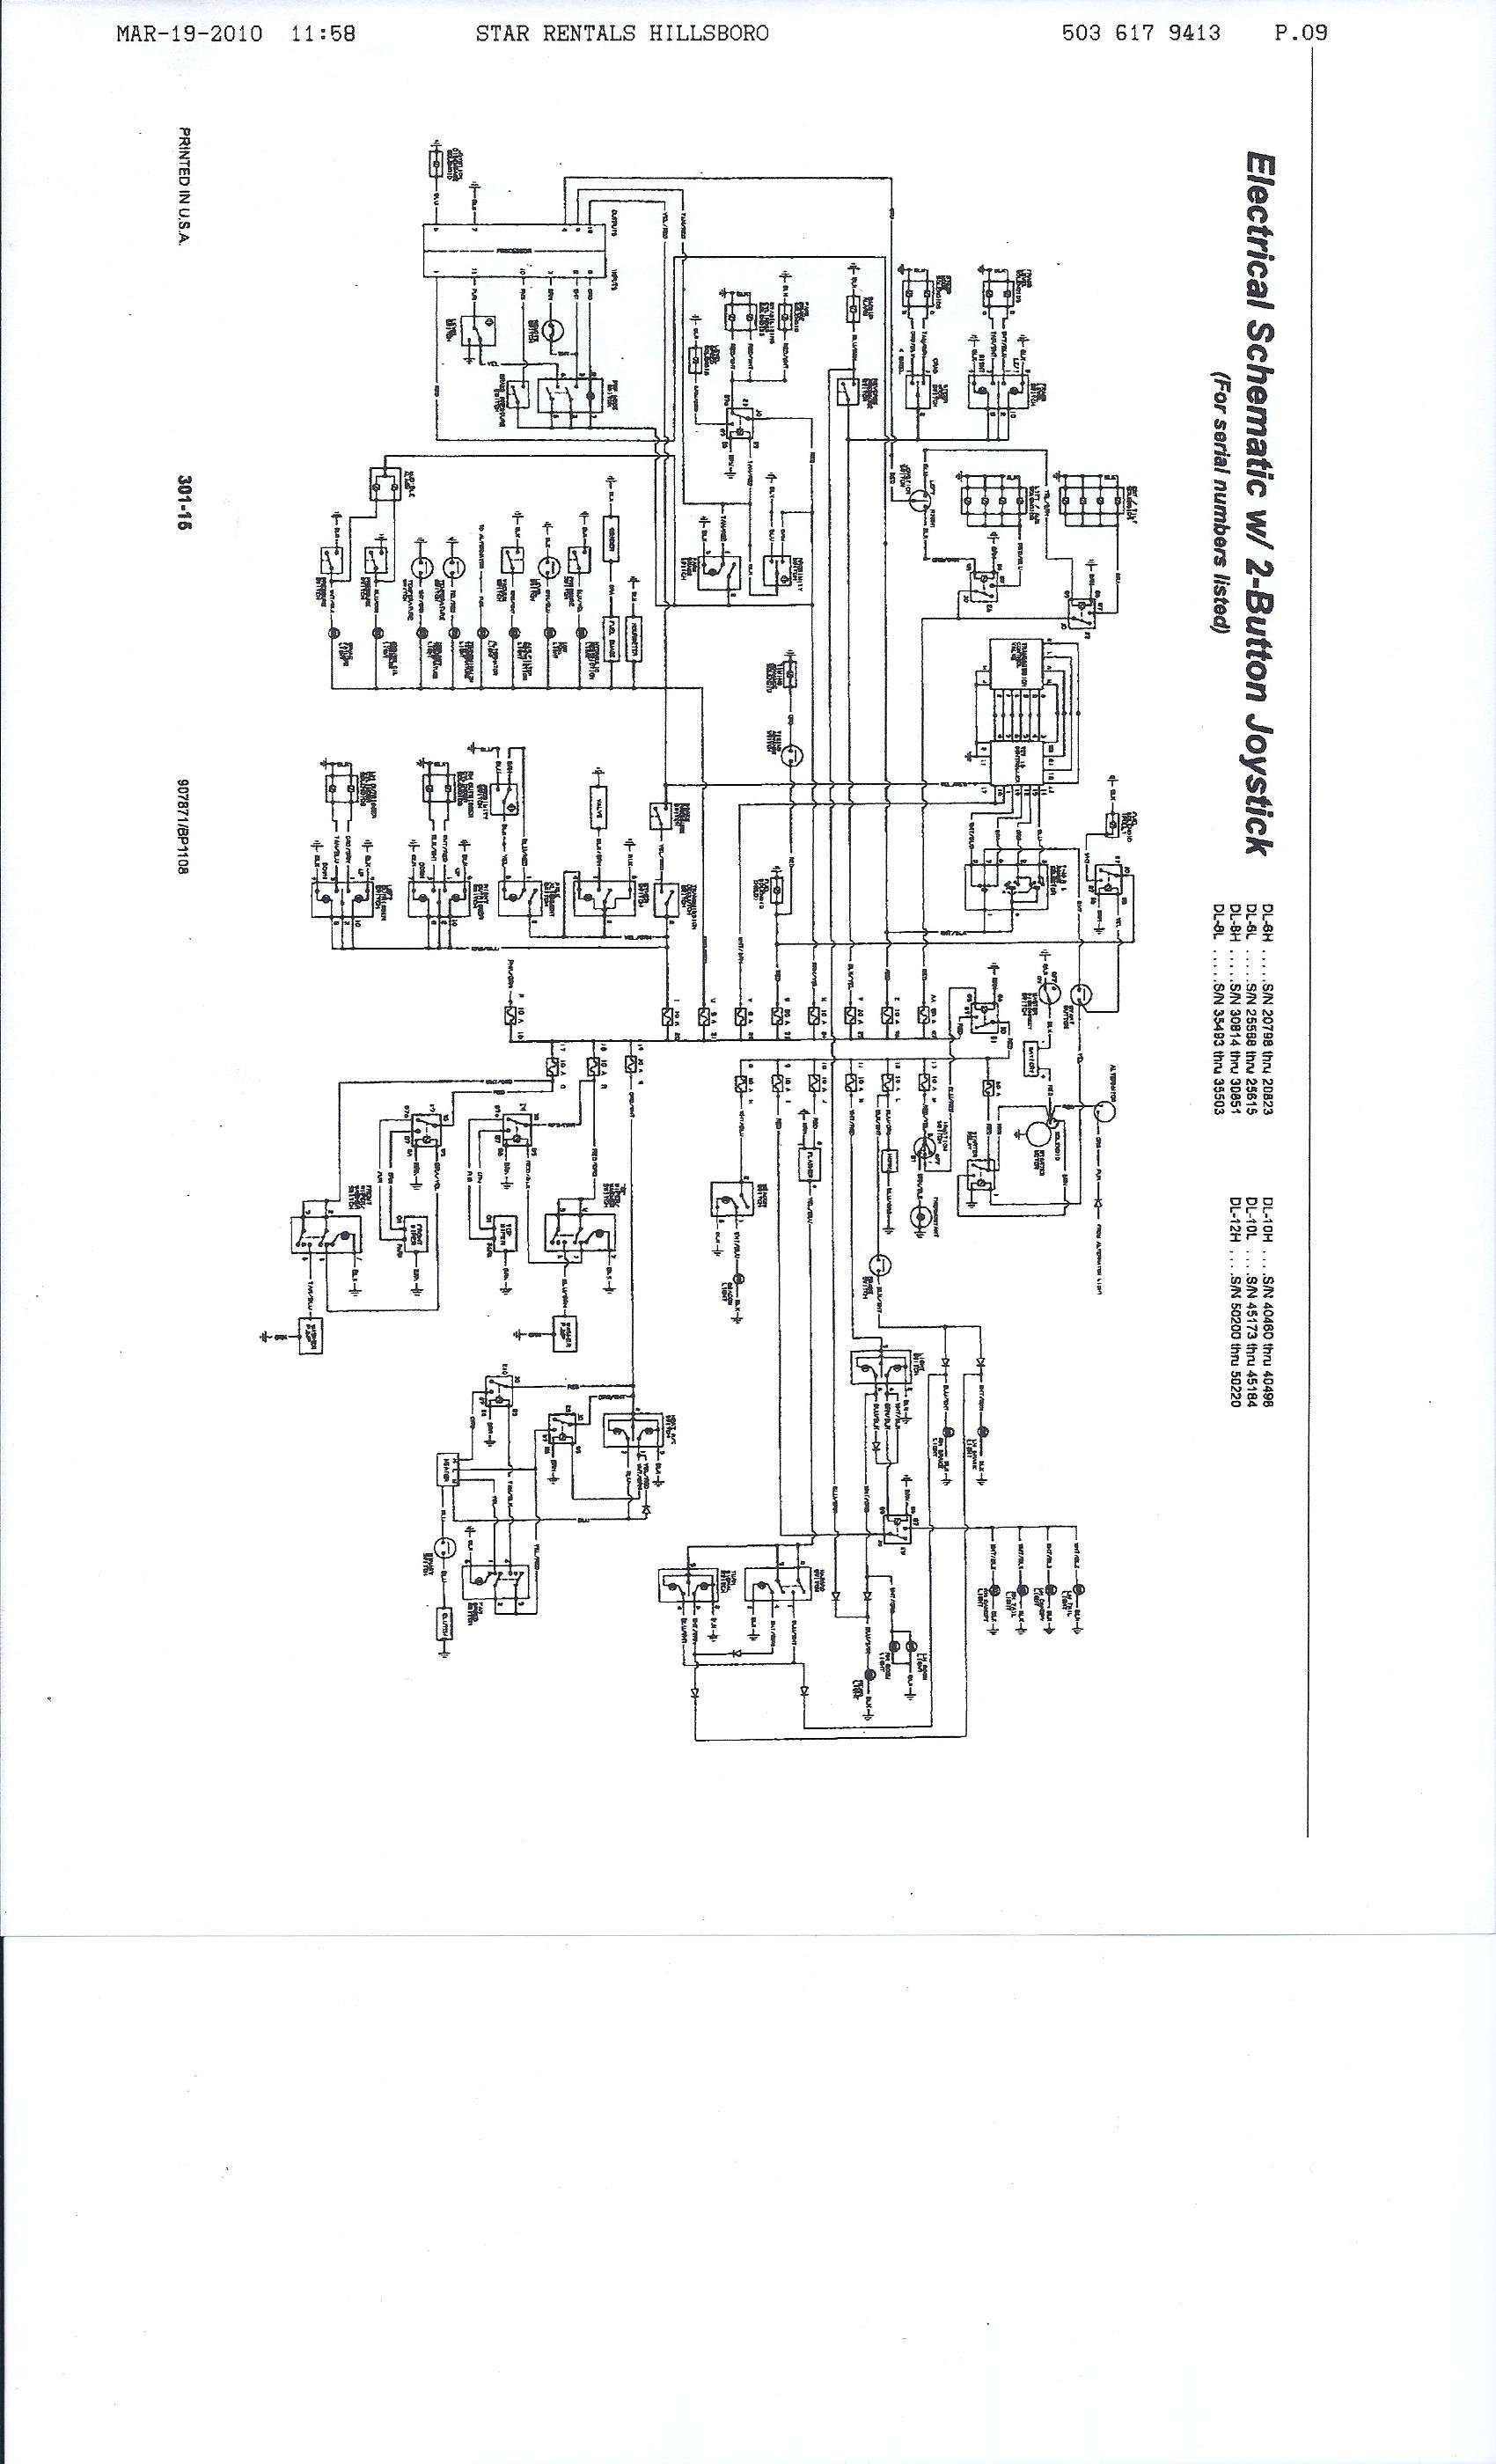 dl possible for you to e mail or fax an electrical schematic here is your schematics let me know if you need more help